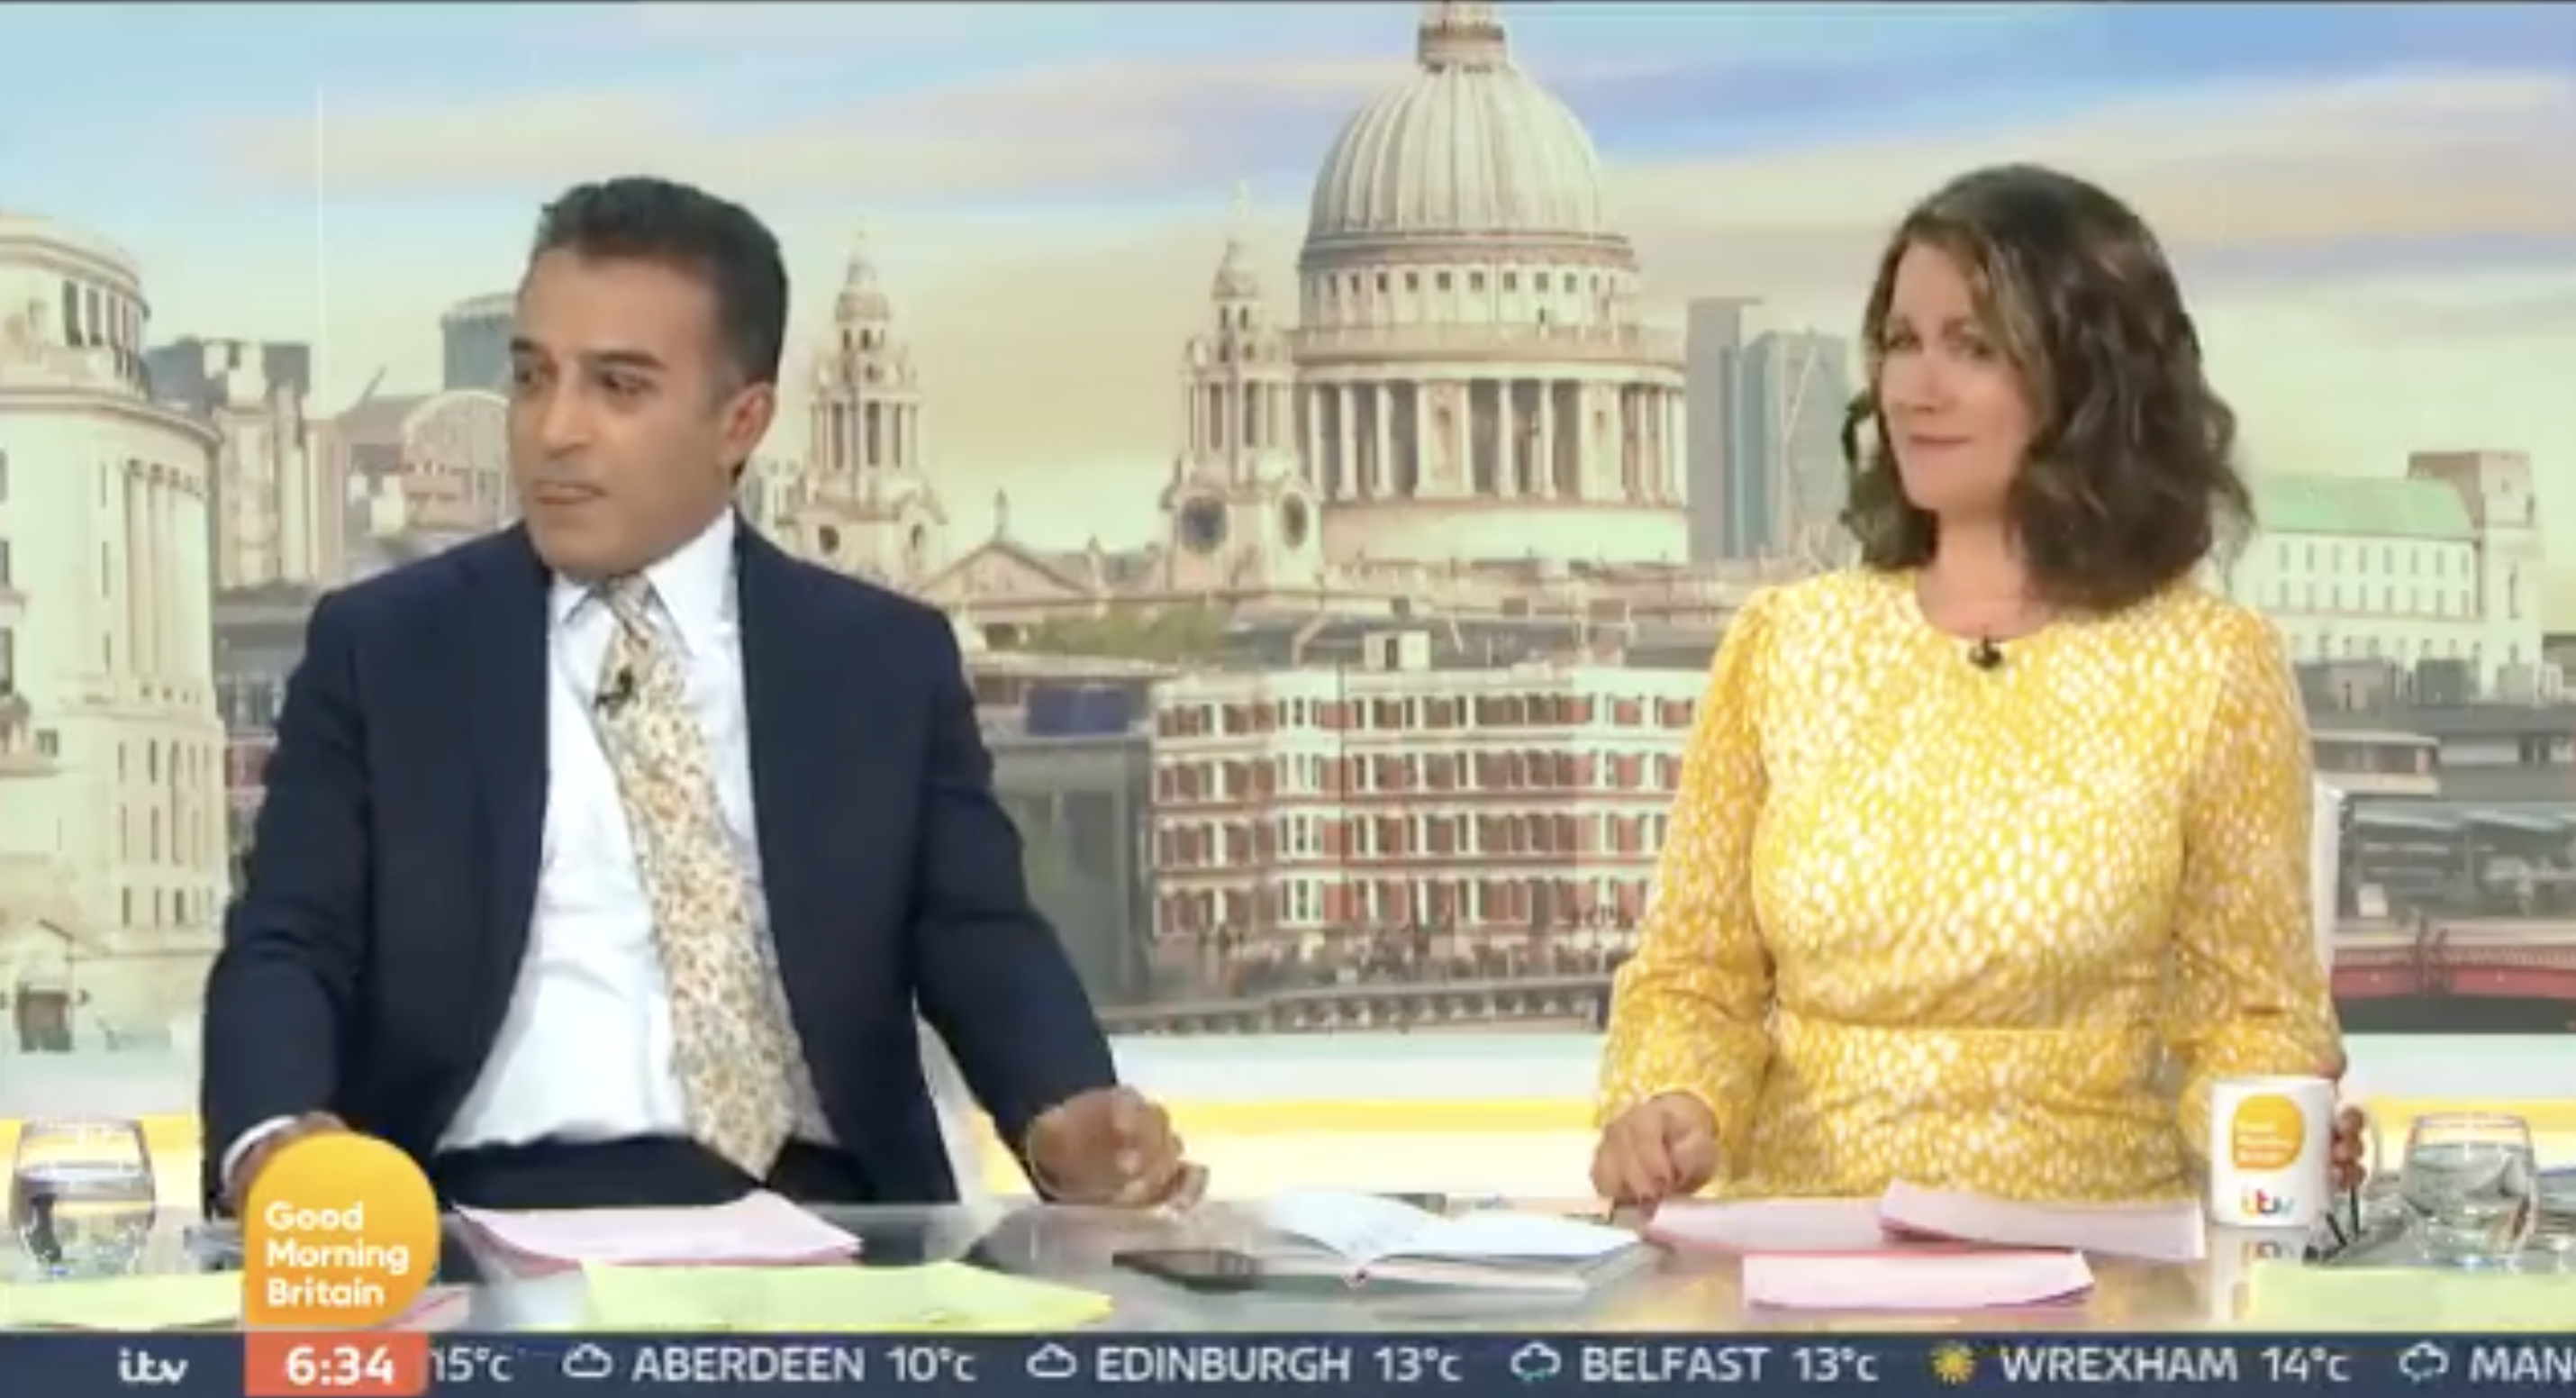 No Hugs for Susanna from Co-Host Adil Ray on GMB